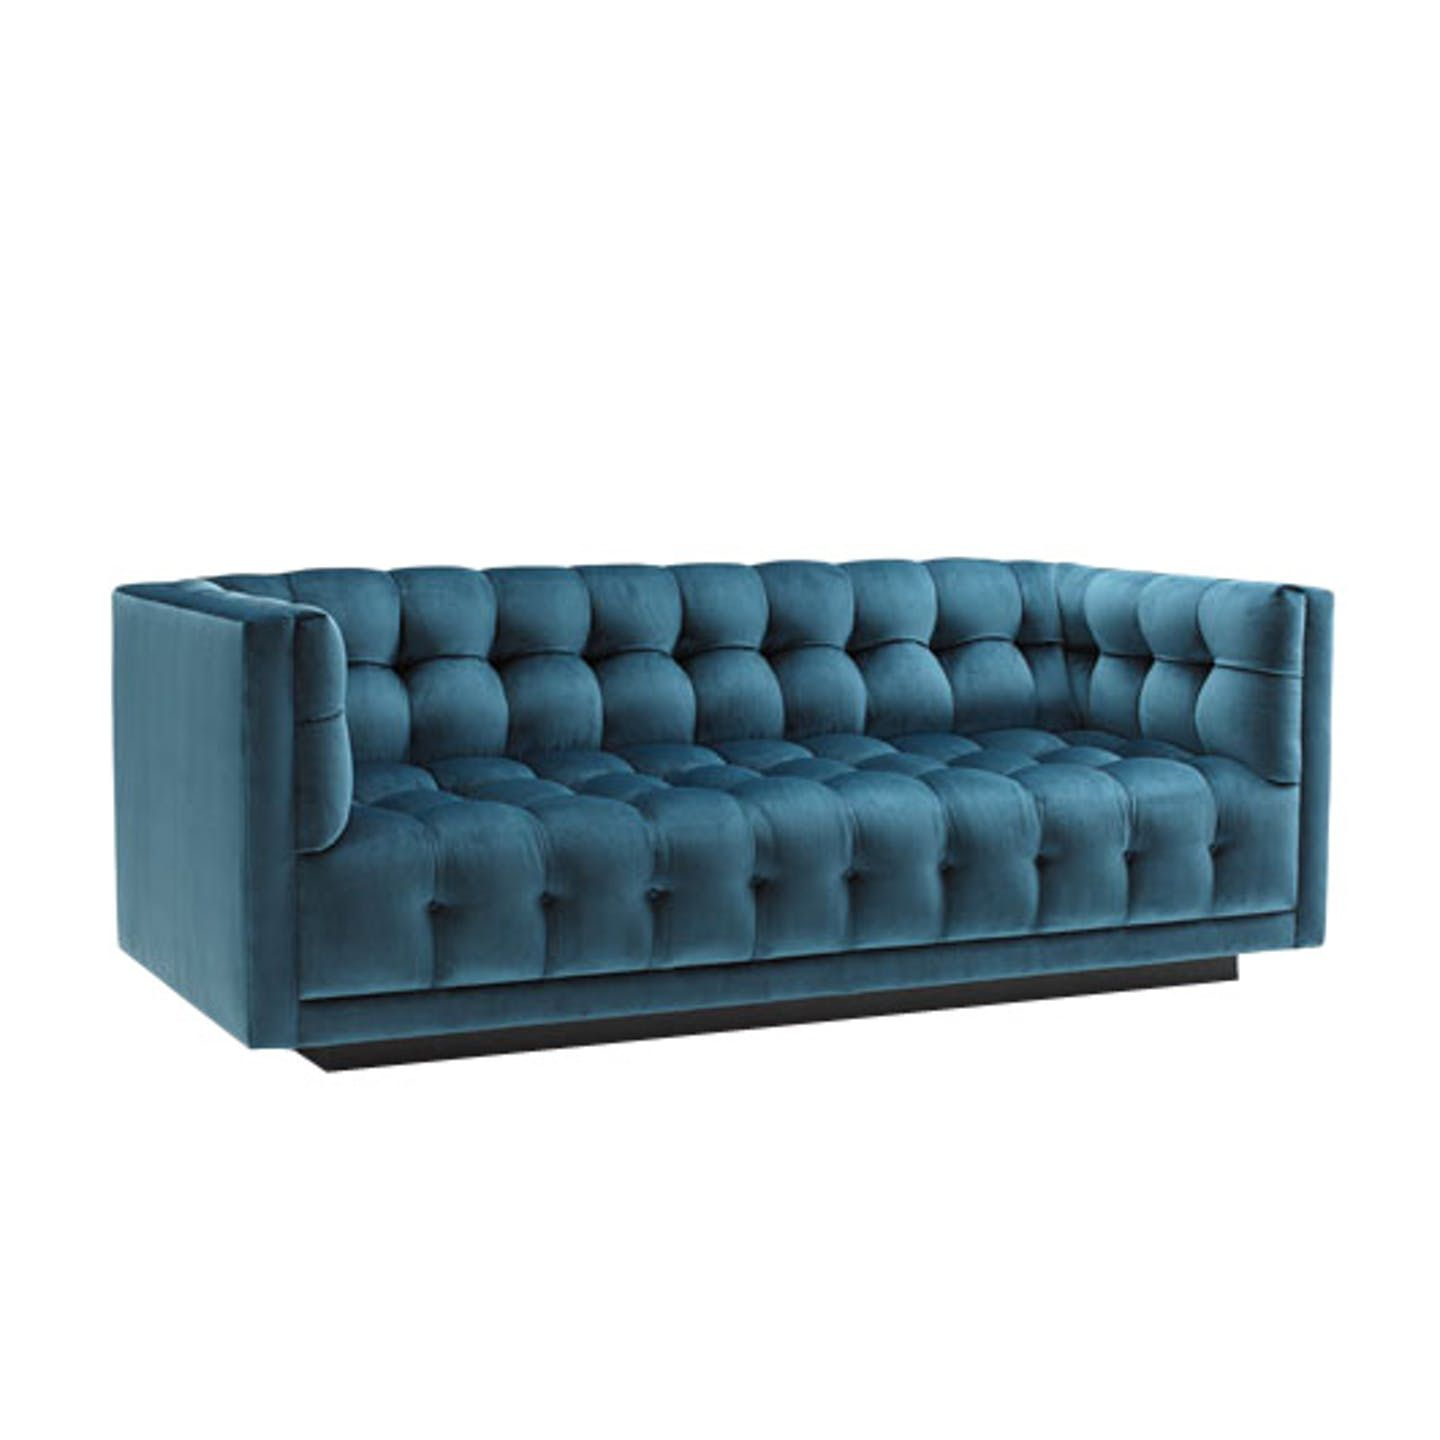 edward ferrell lewis mittman dunaway sofa furniture furniture rh pinterest com